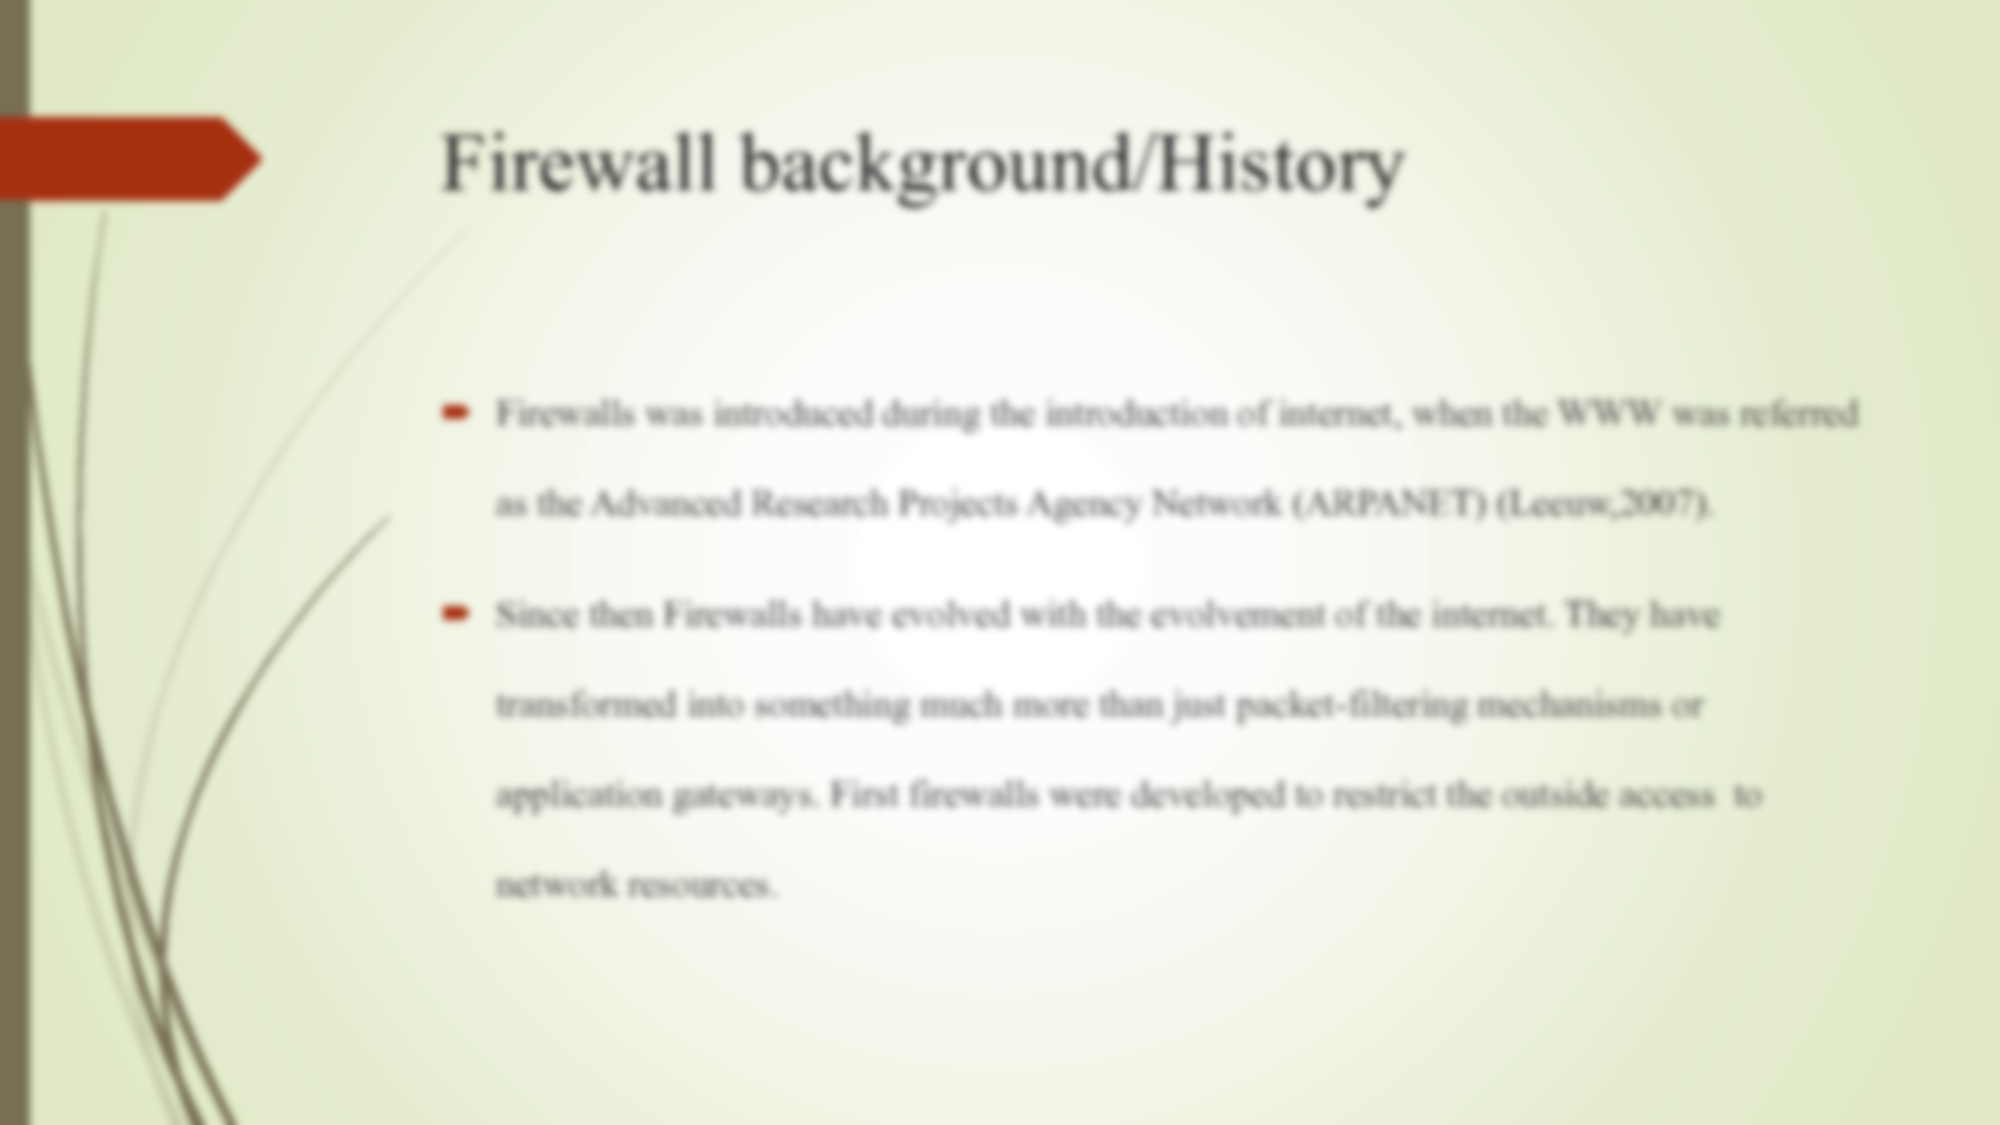 an introduction to the history of firewall 82-10-16 an introduction to internet security and firewall policies william hugh murray payoff this article is an introduction to security on the internet.